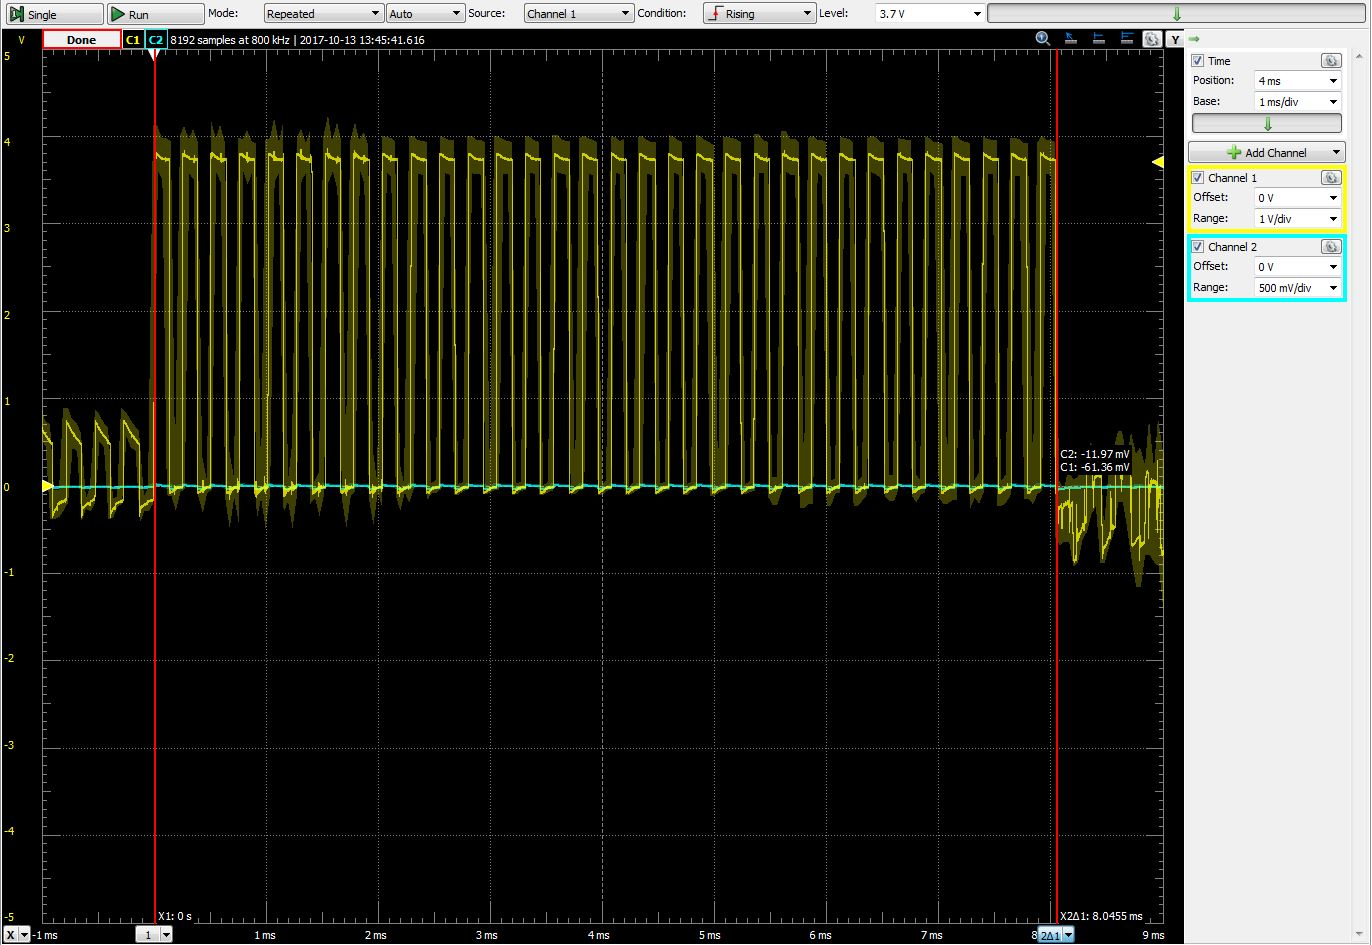 An LED on for whole 16-bit timer at 8MHz. 8.05ms for a 16-bit counter overflow.